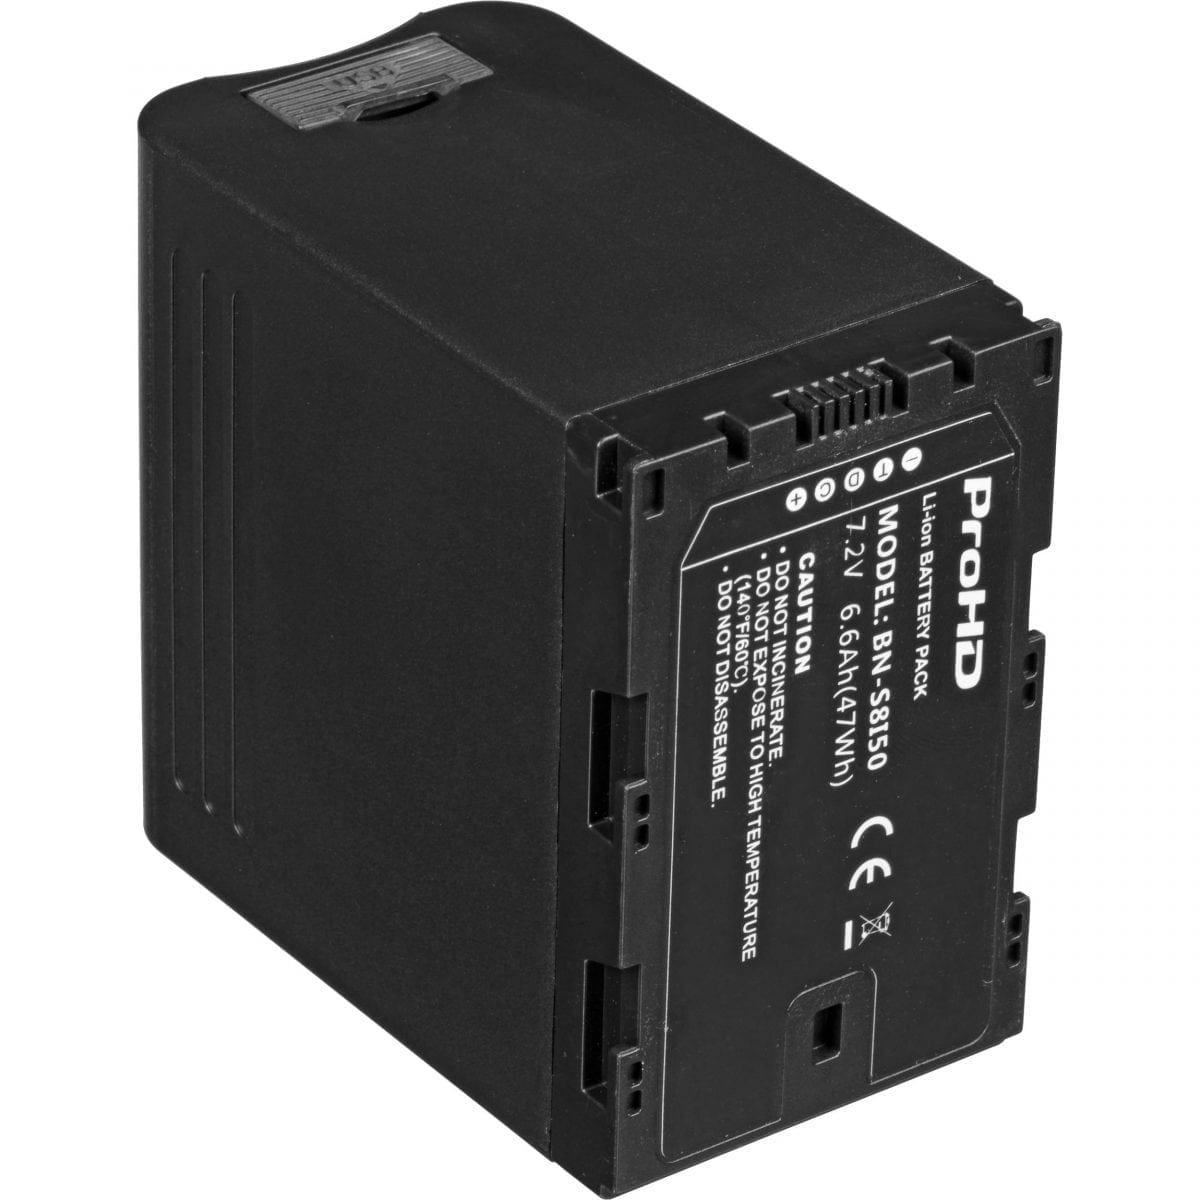 JVC BN-S8I50 7.2V/6.6Ah LITHIUM ION BATTERY FOR GY-LS300,HM200/600/650, DT-X MONITORS Rear